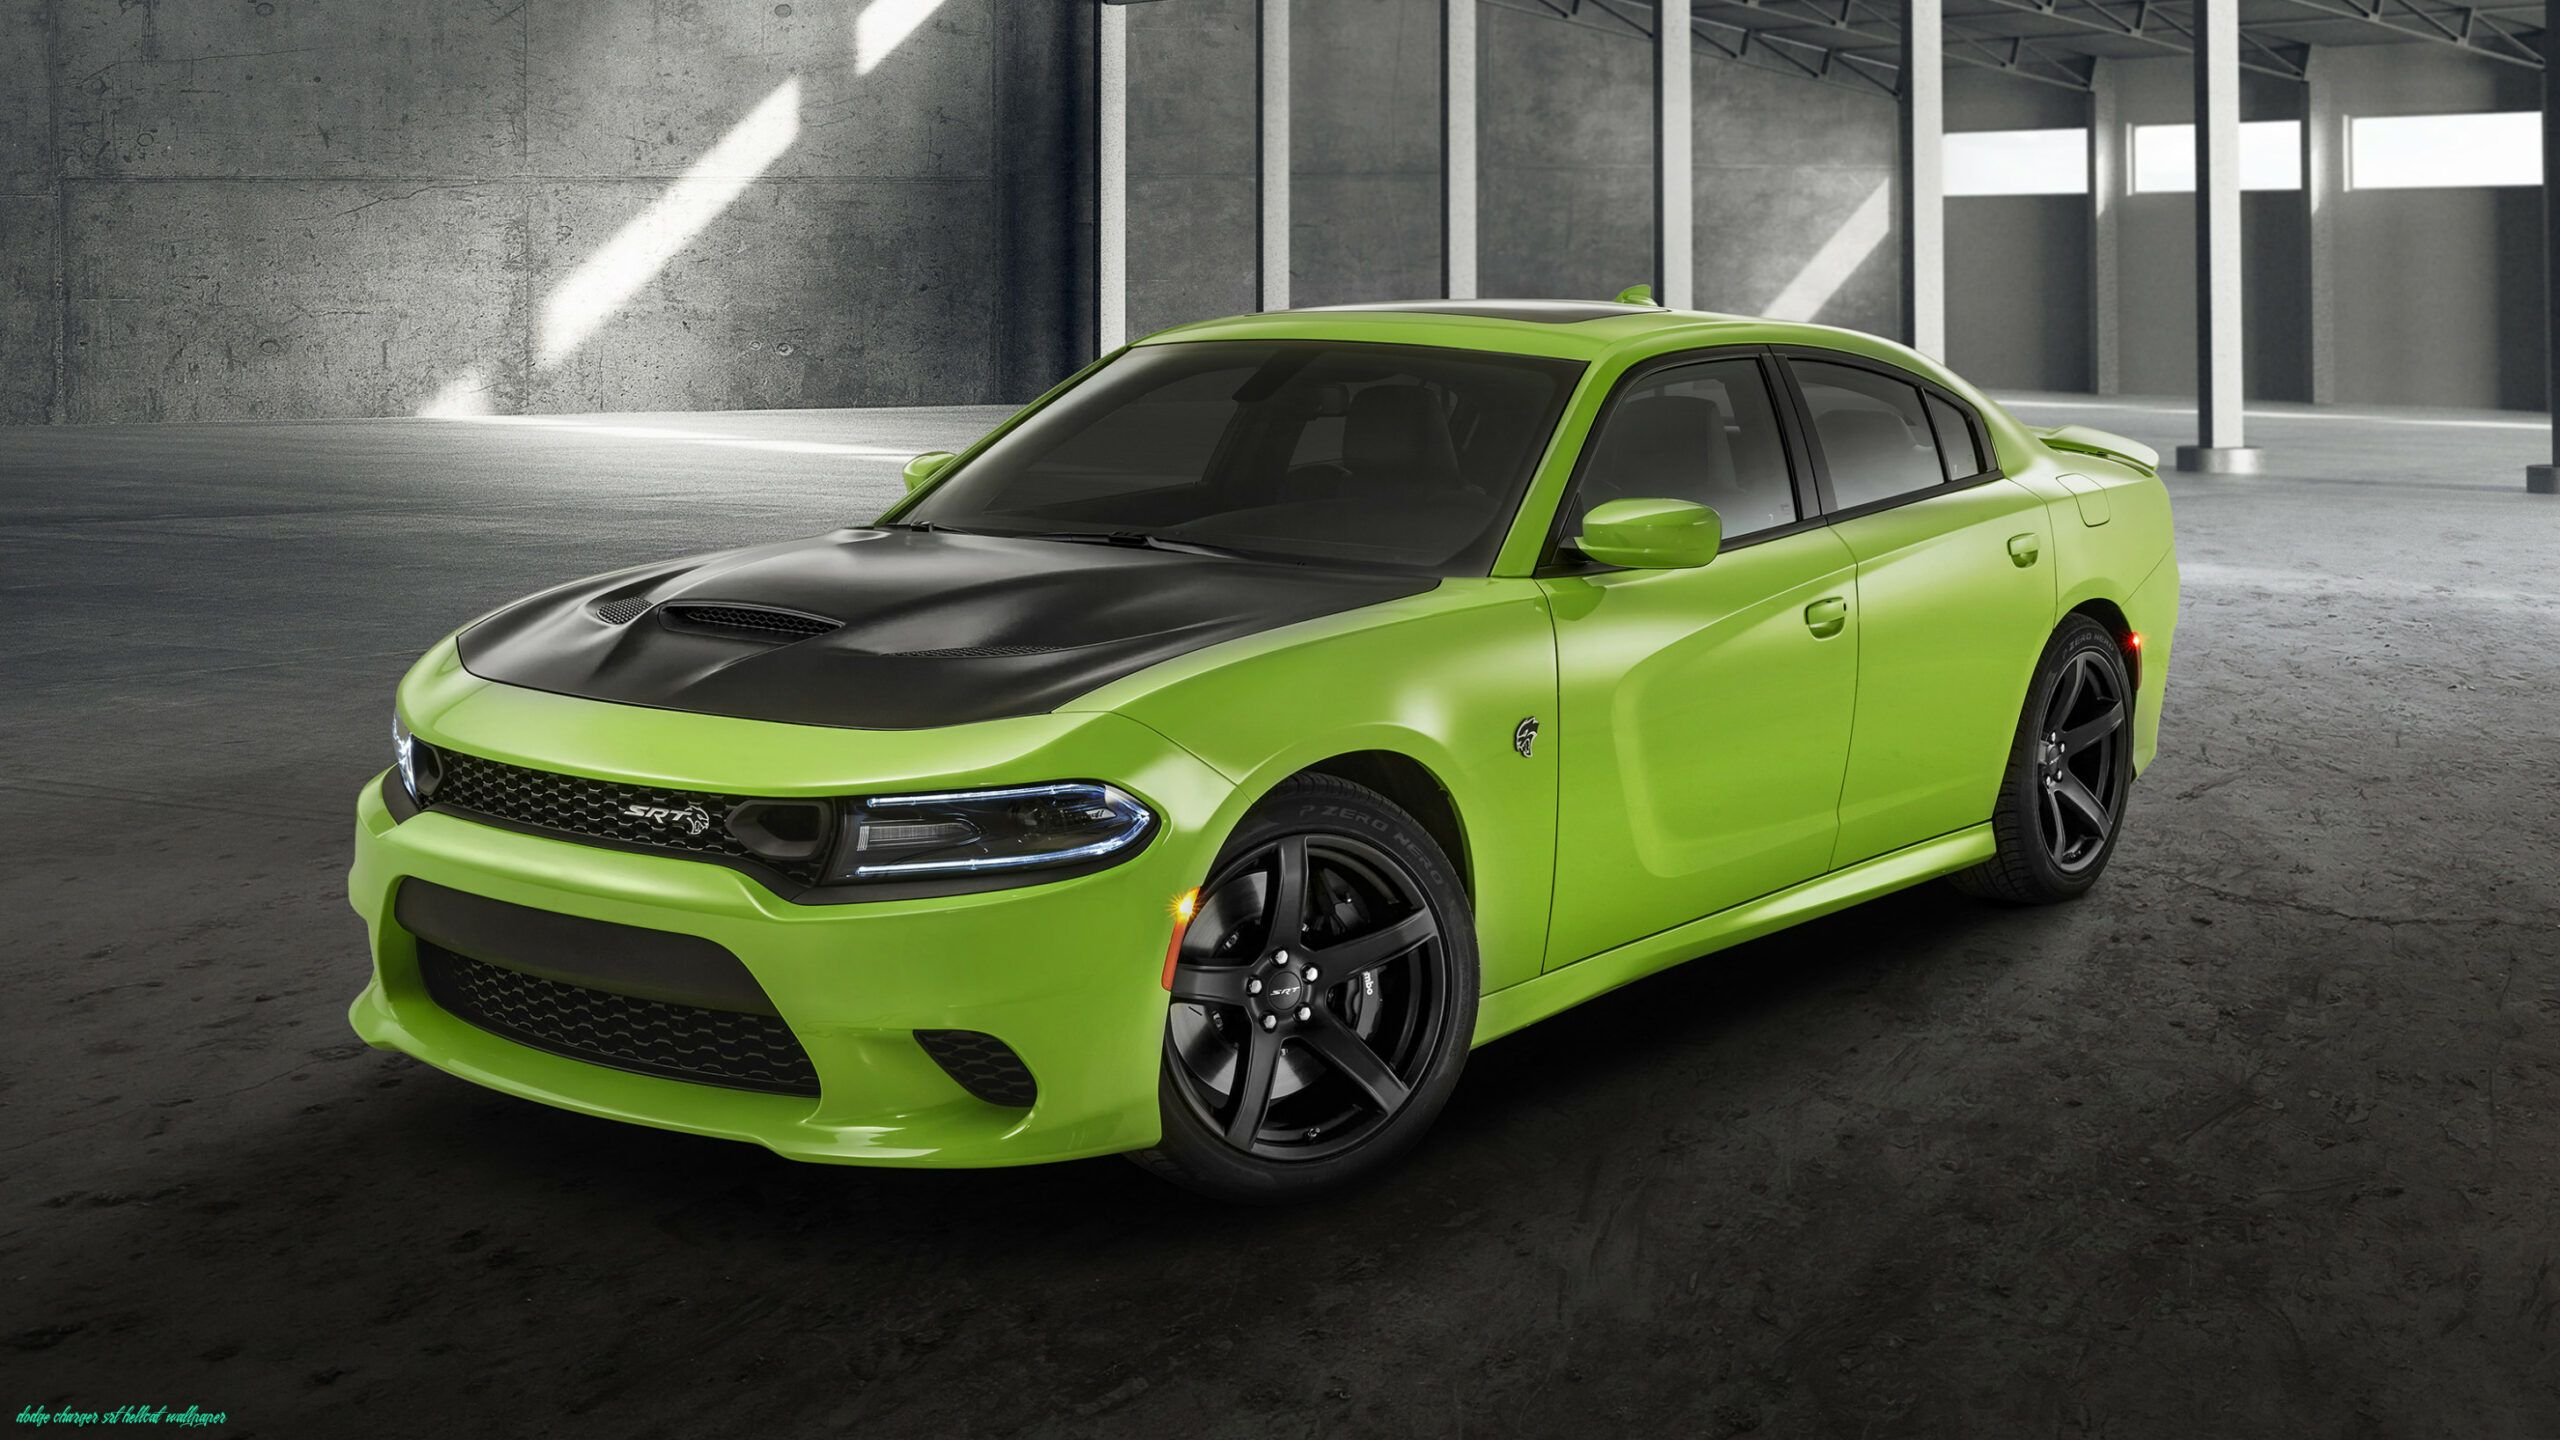 What Makes Dodge Charger Srt Hellcat Wallpaper So Addictive That You Never Want To Miss One Dodge Charger Charger Srt Hellcat Dodge Charger Srt Charger Srt